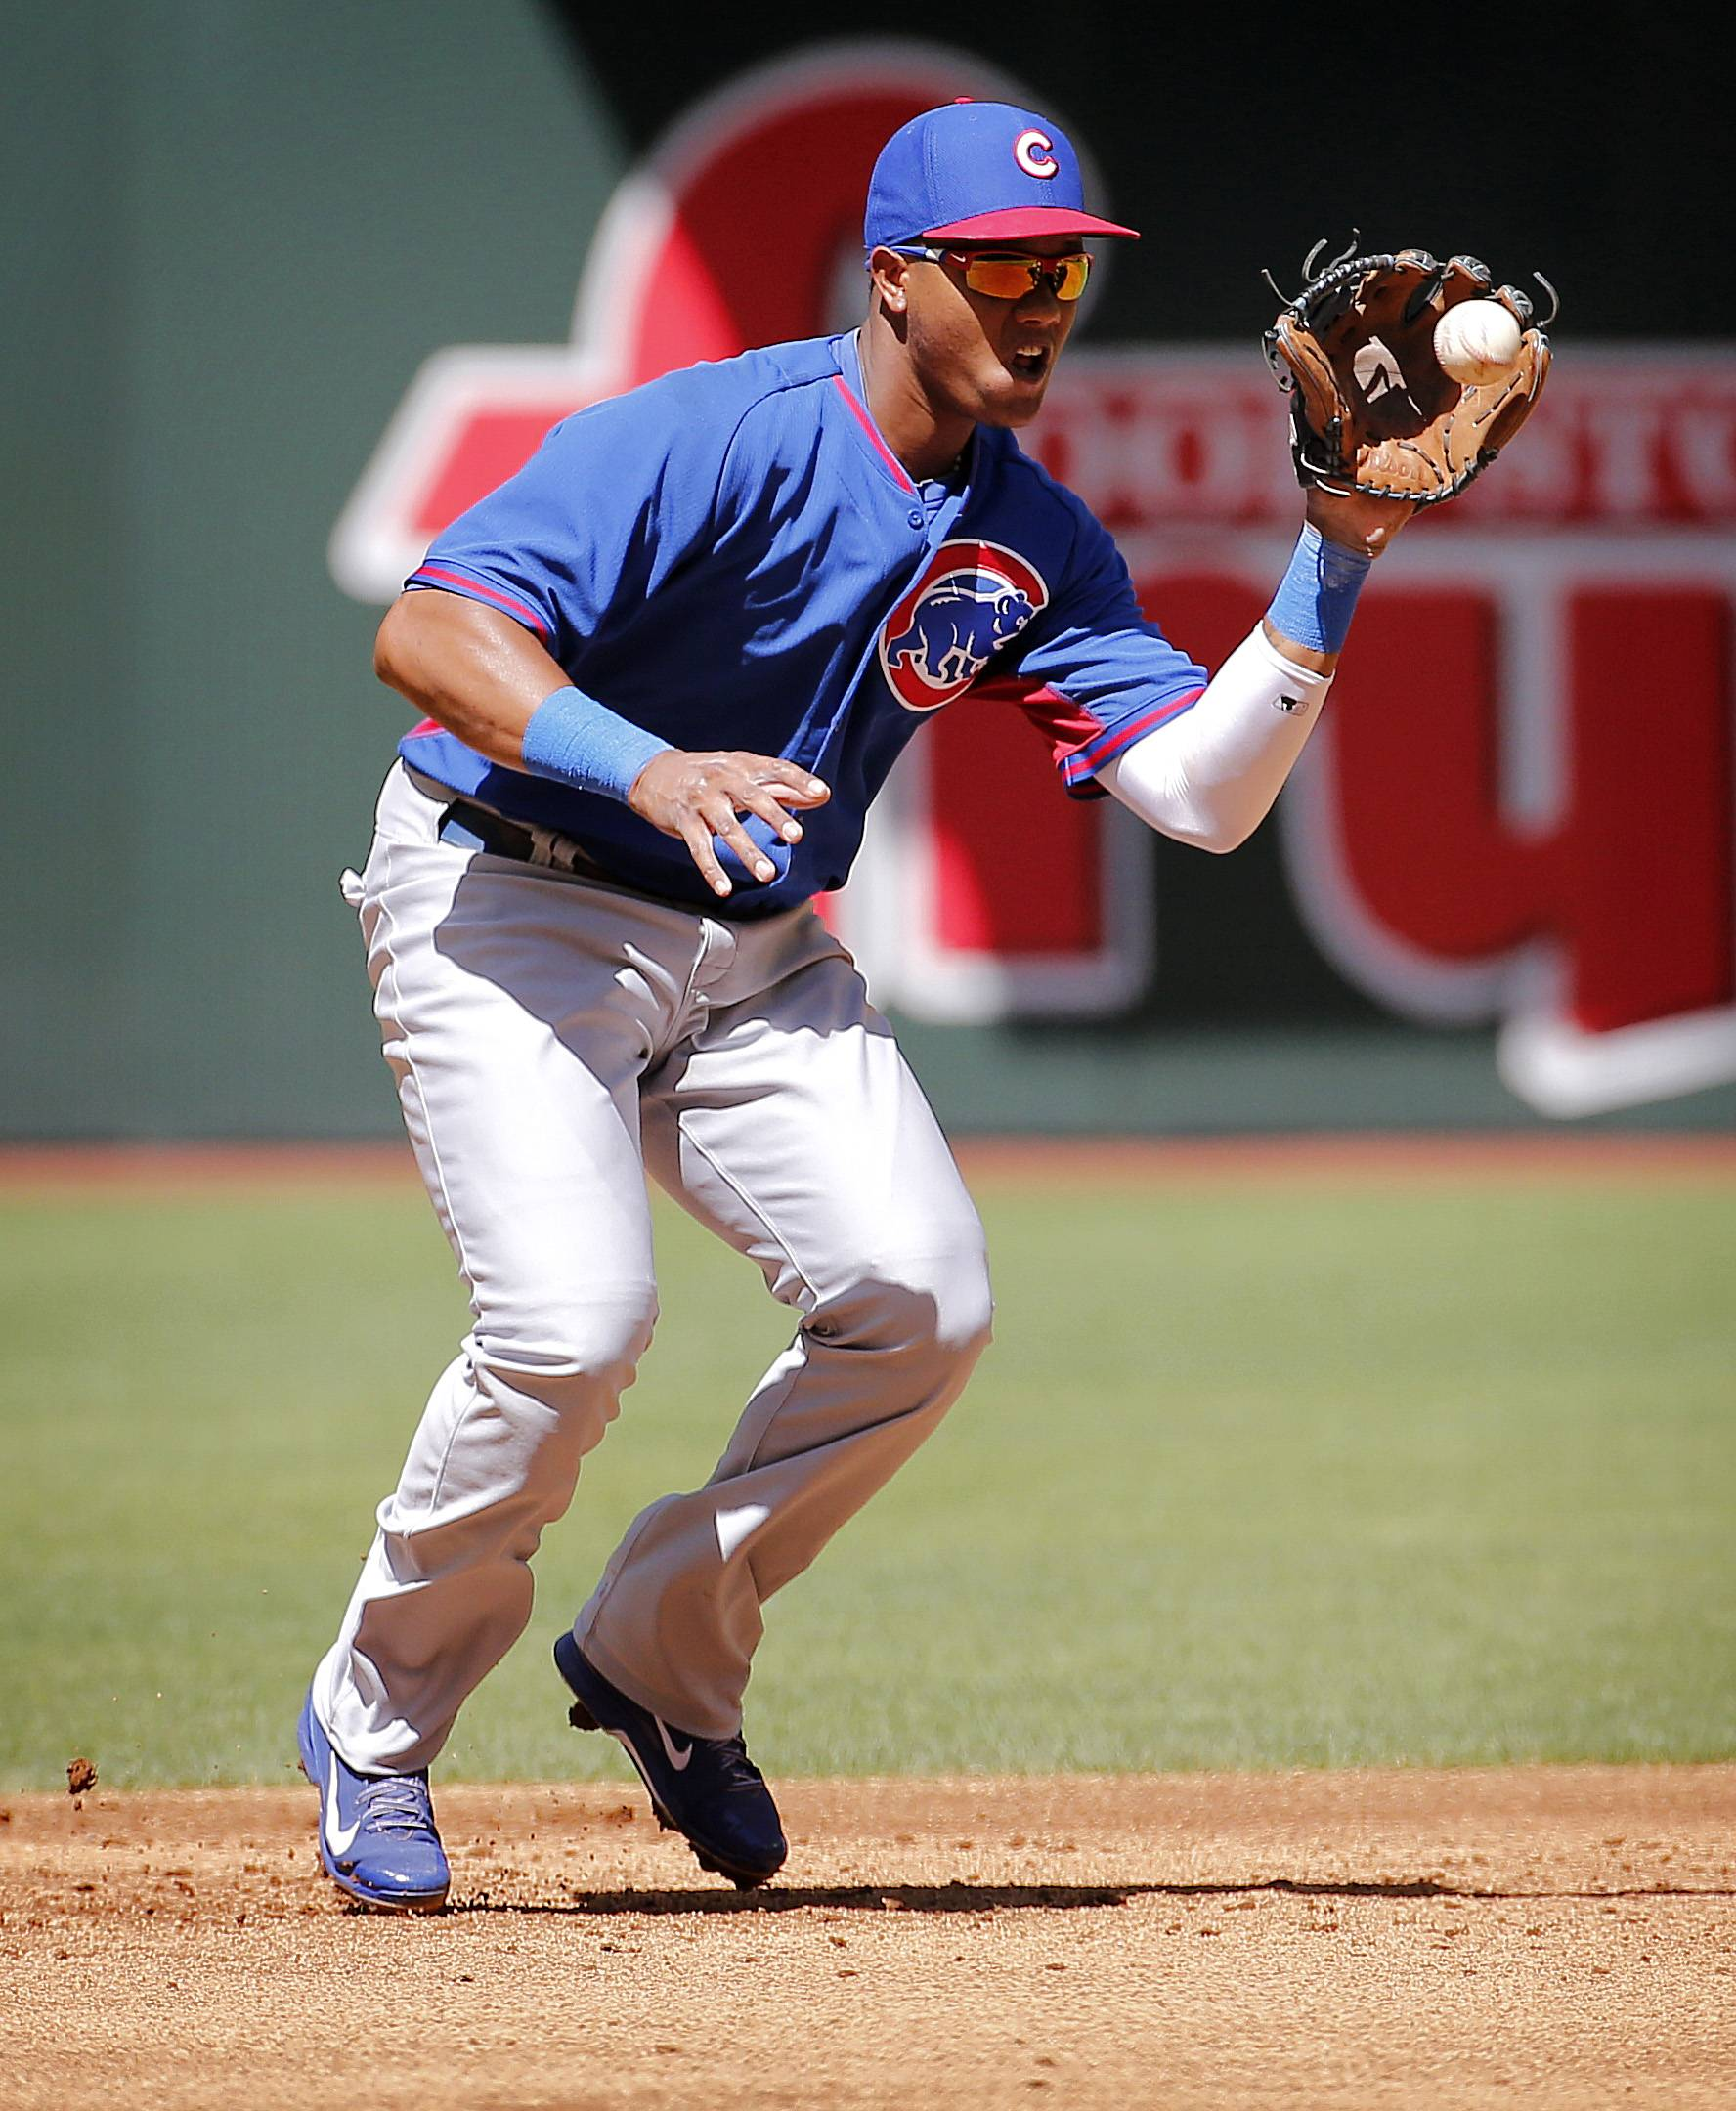 The Cubs' Starlin Castro fields a ground out hit by the Arizona Diamondbacks' Eric Chavez during Saturday's exhibition spring training game in Phoenix. The Cubs won 9-8.